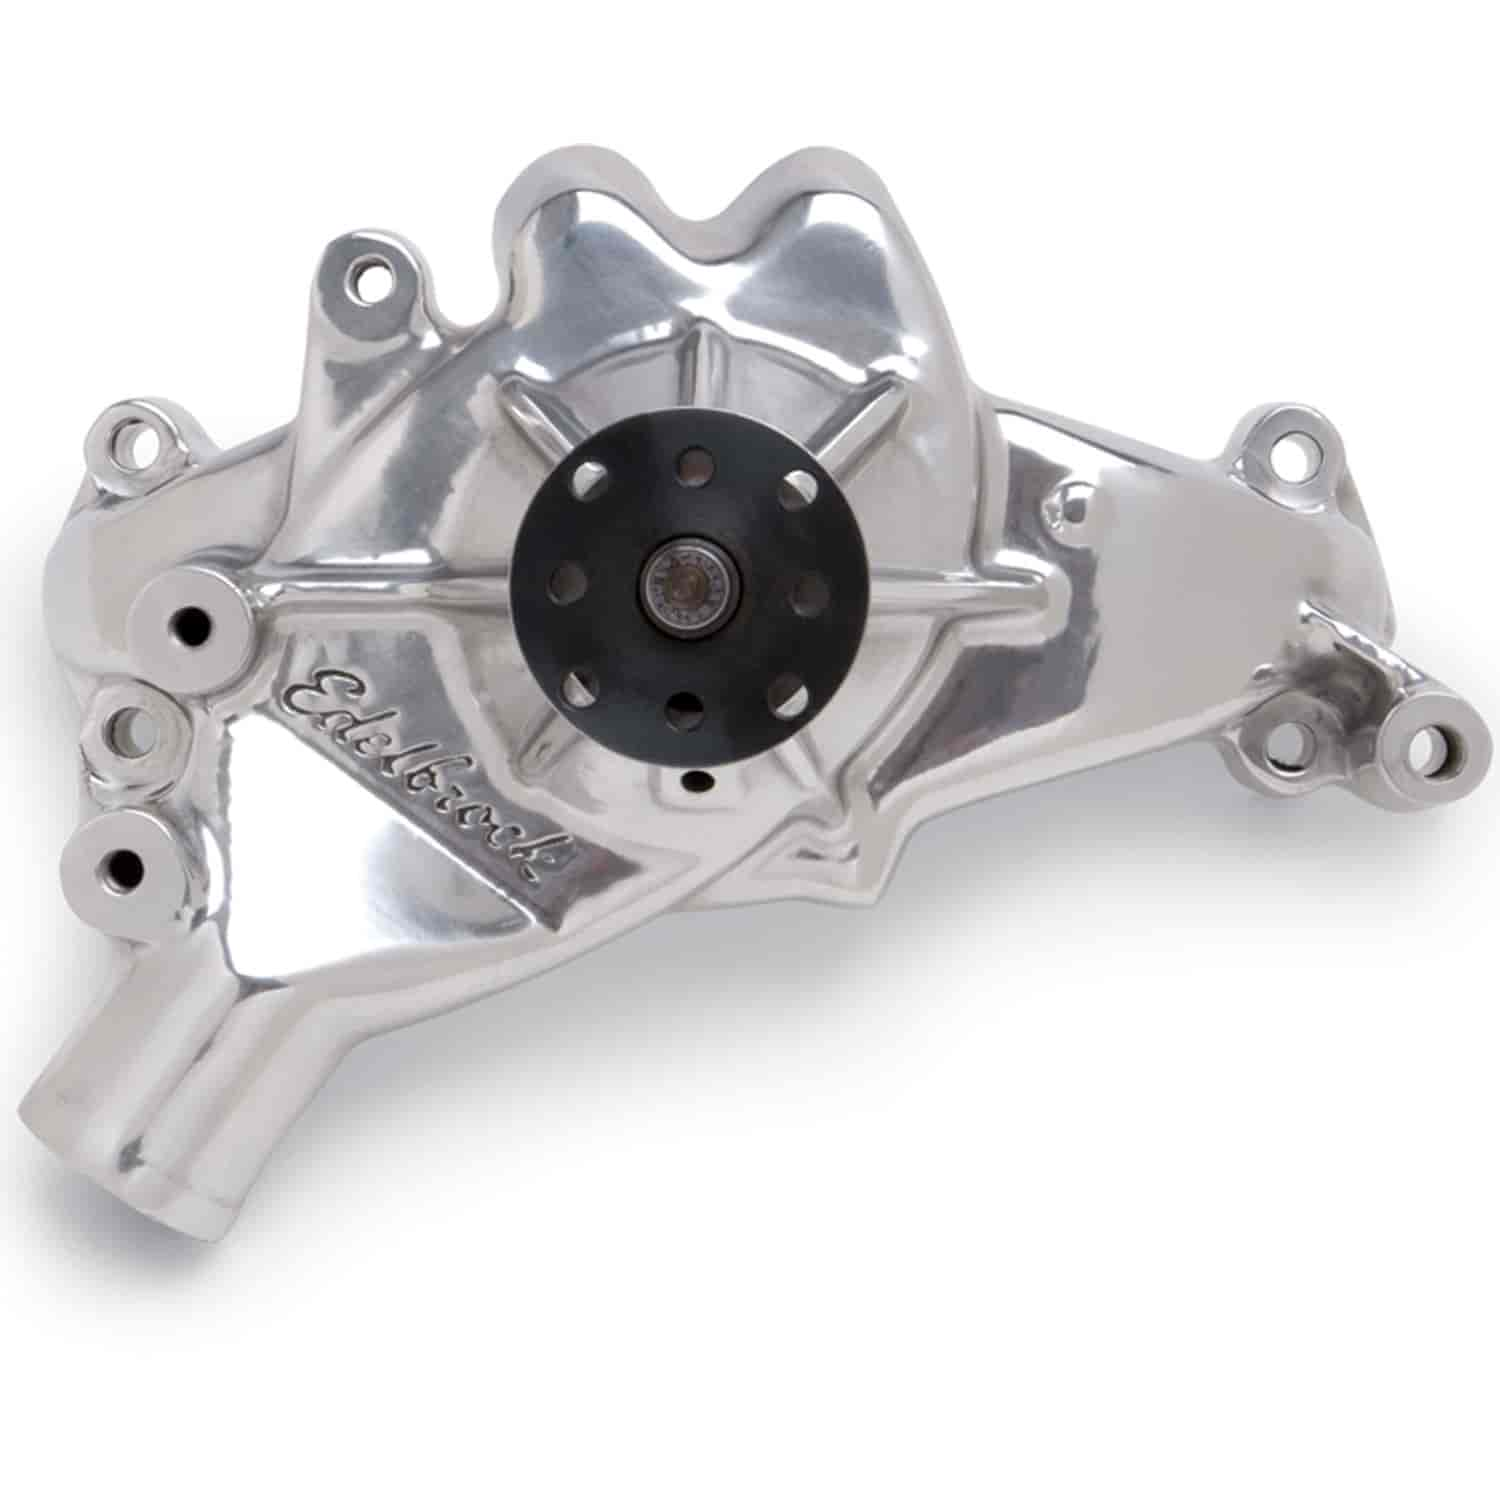 Edelbrock 8861 - Edelbrock Victor Series Water Pumps - Polished Finish